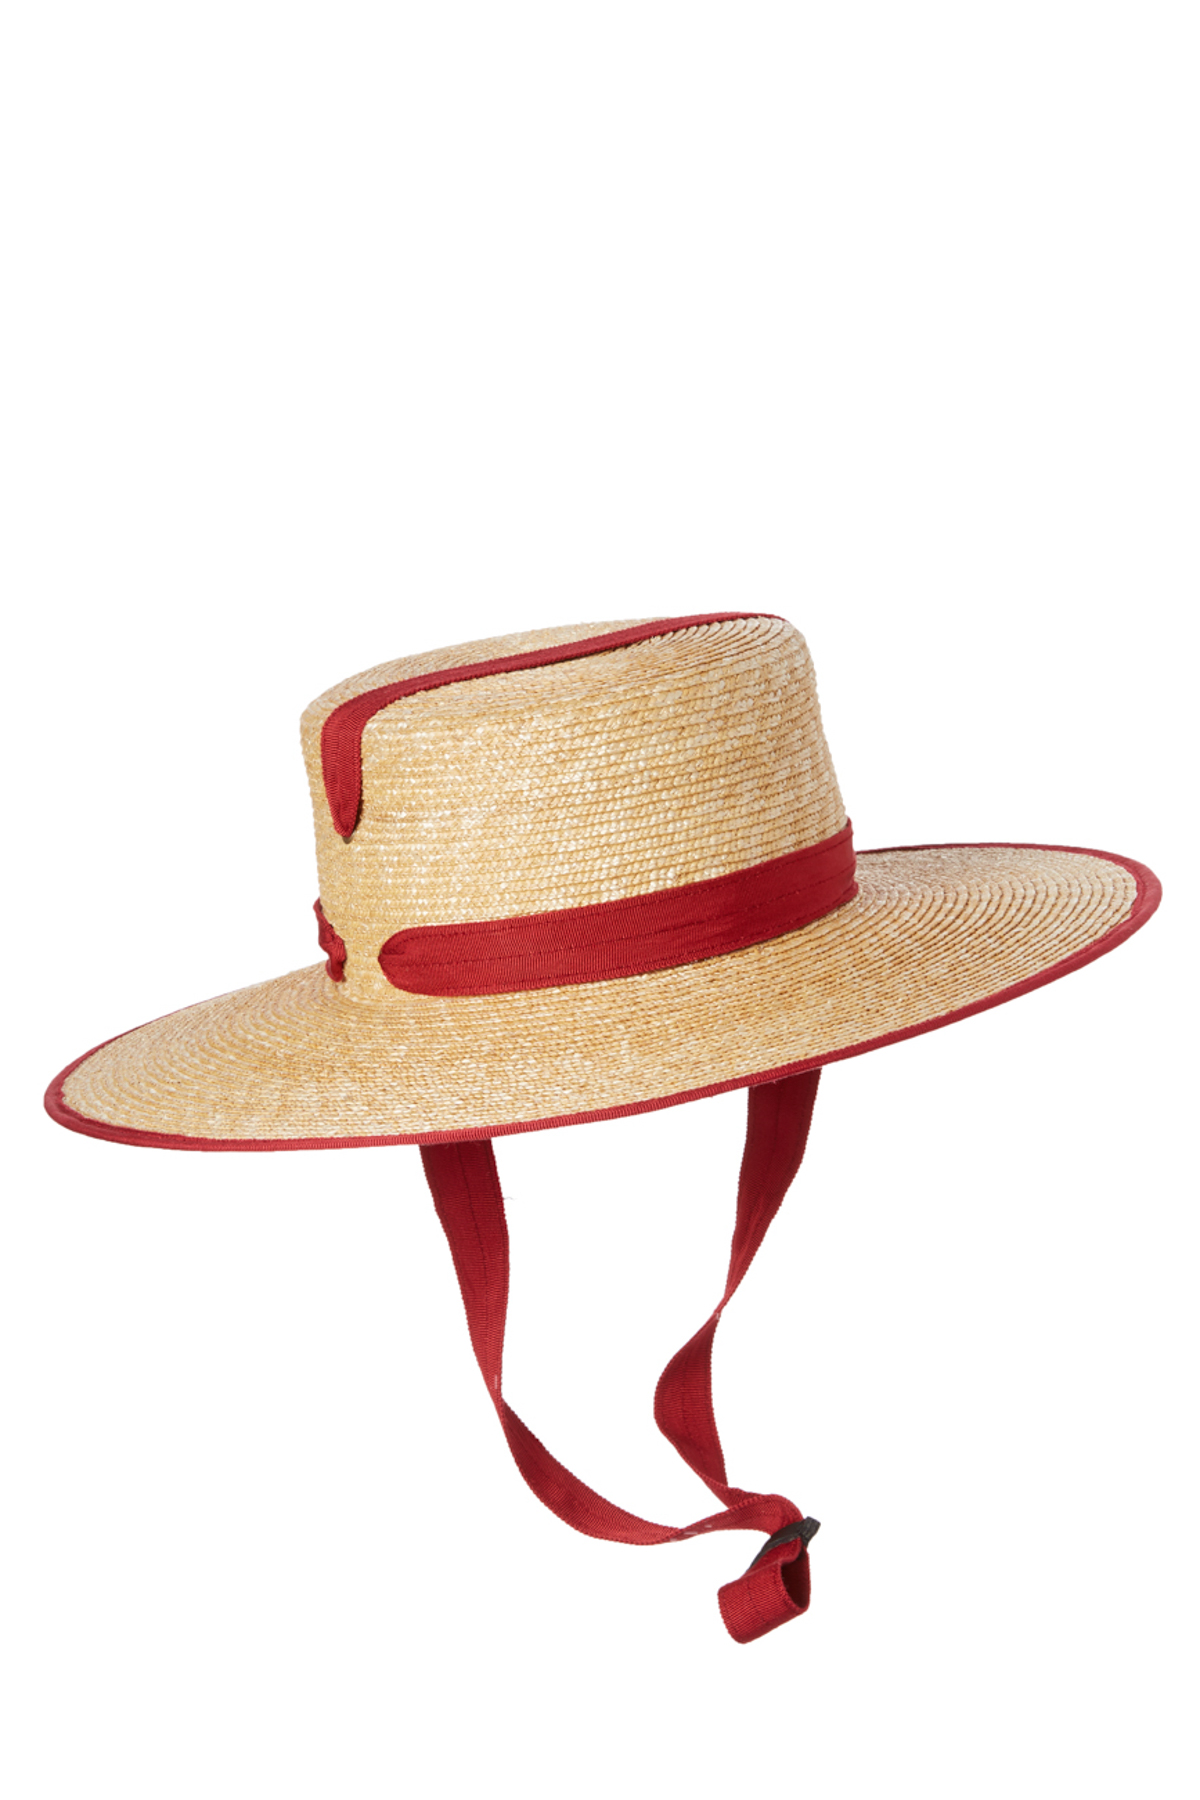 Zorro Bis Ribbon Trim Wide Brim Hat - Natural/Pomegranate 1